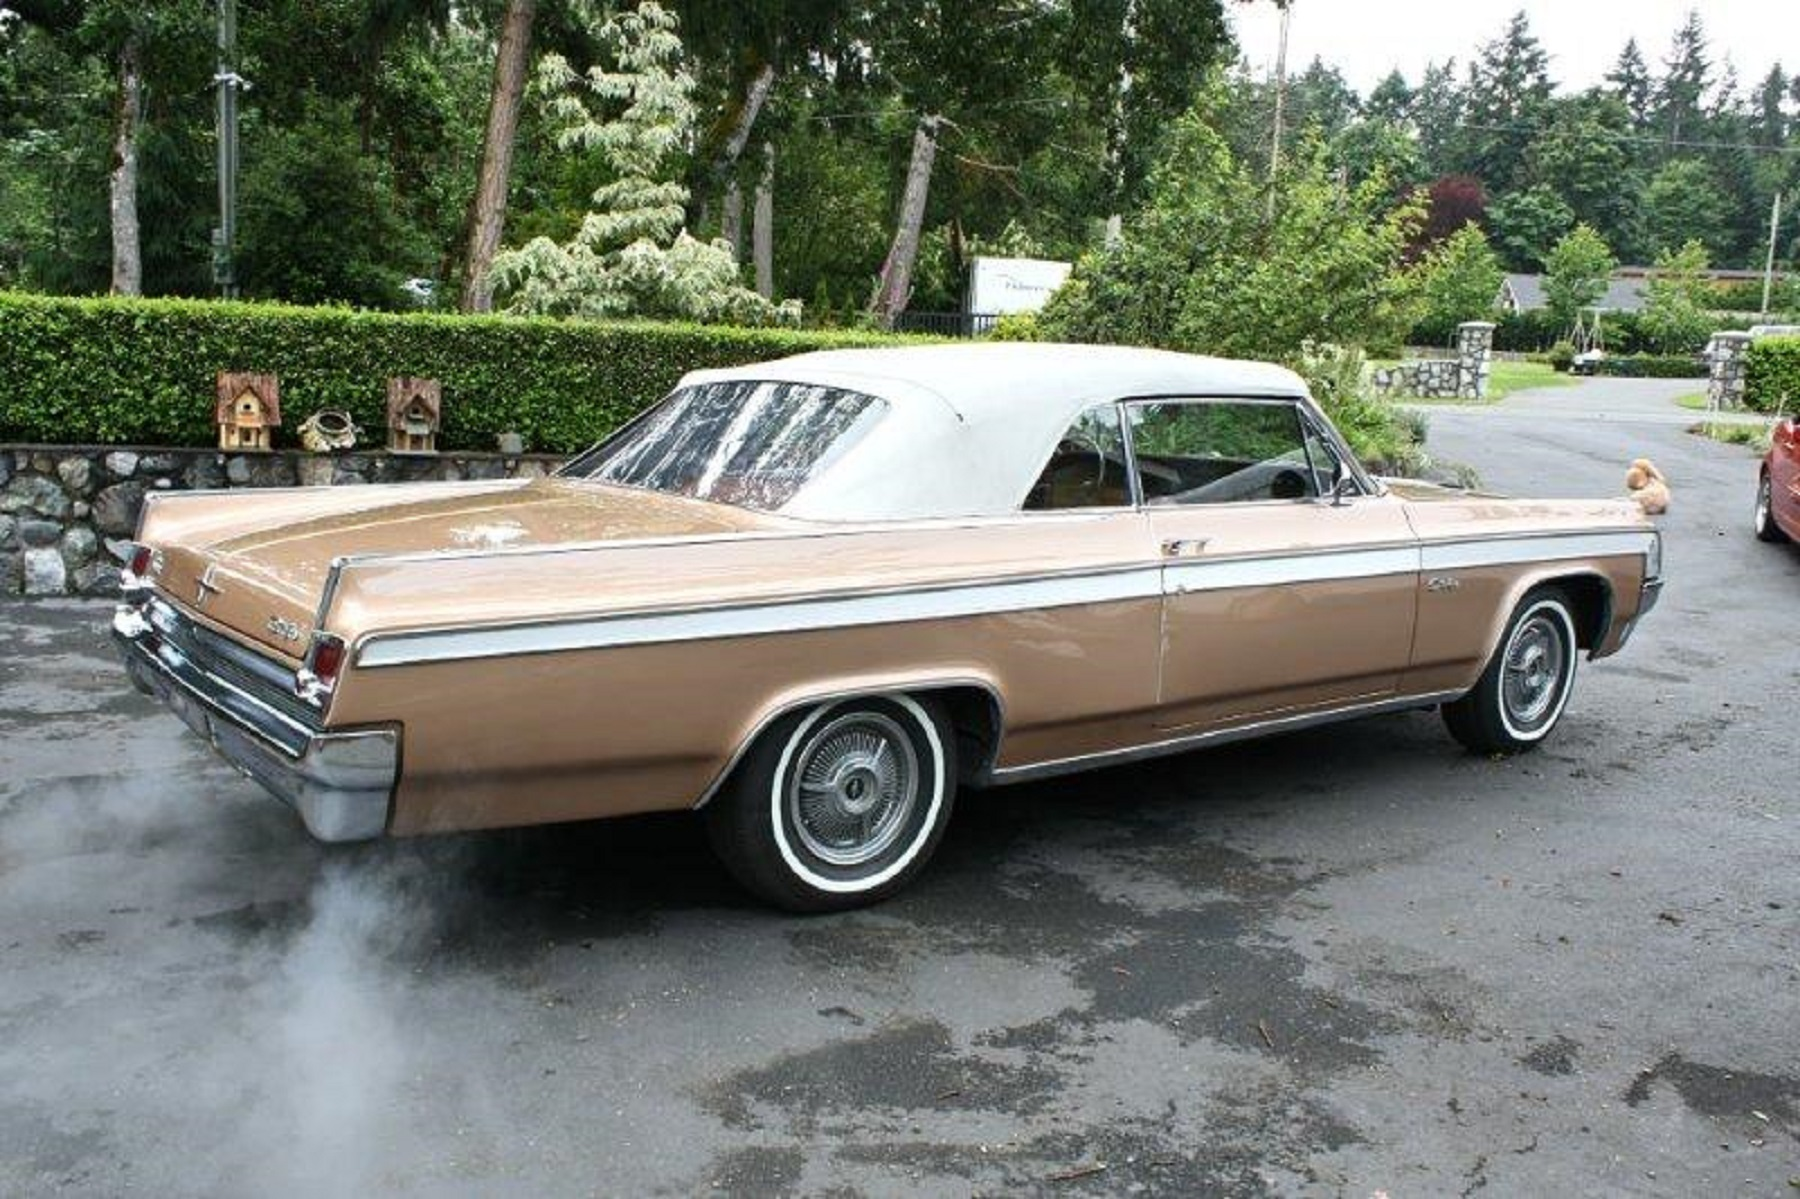 Isted Equipment Includes Steering Brakes Windows Antenna Convertible Top Front Seat And Trunk Release It Also Has A Wonderbar Radio With